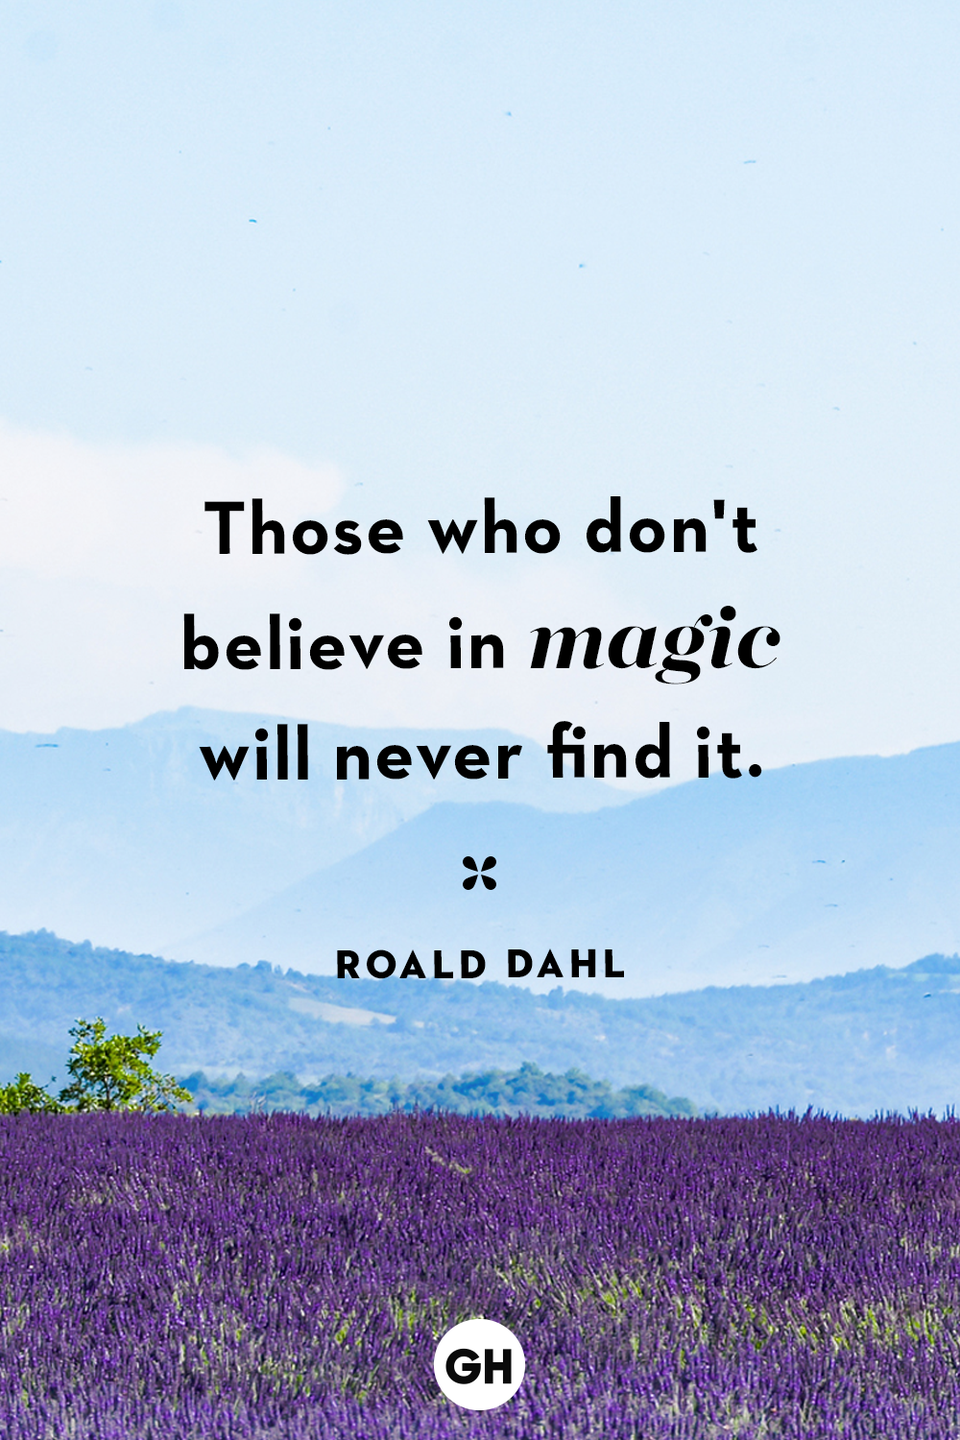 <p>Those who don't believe in magic will never find it.</p>